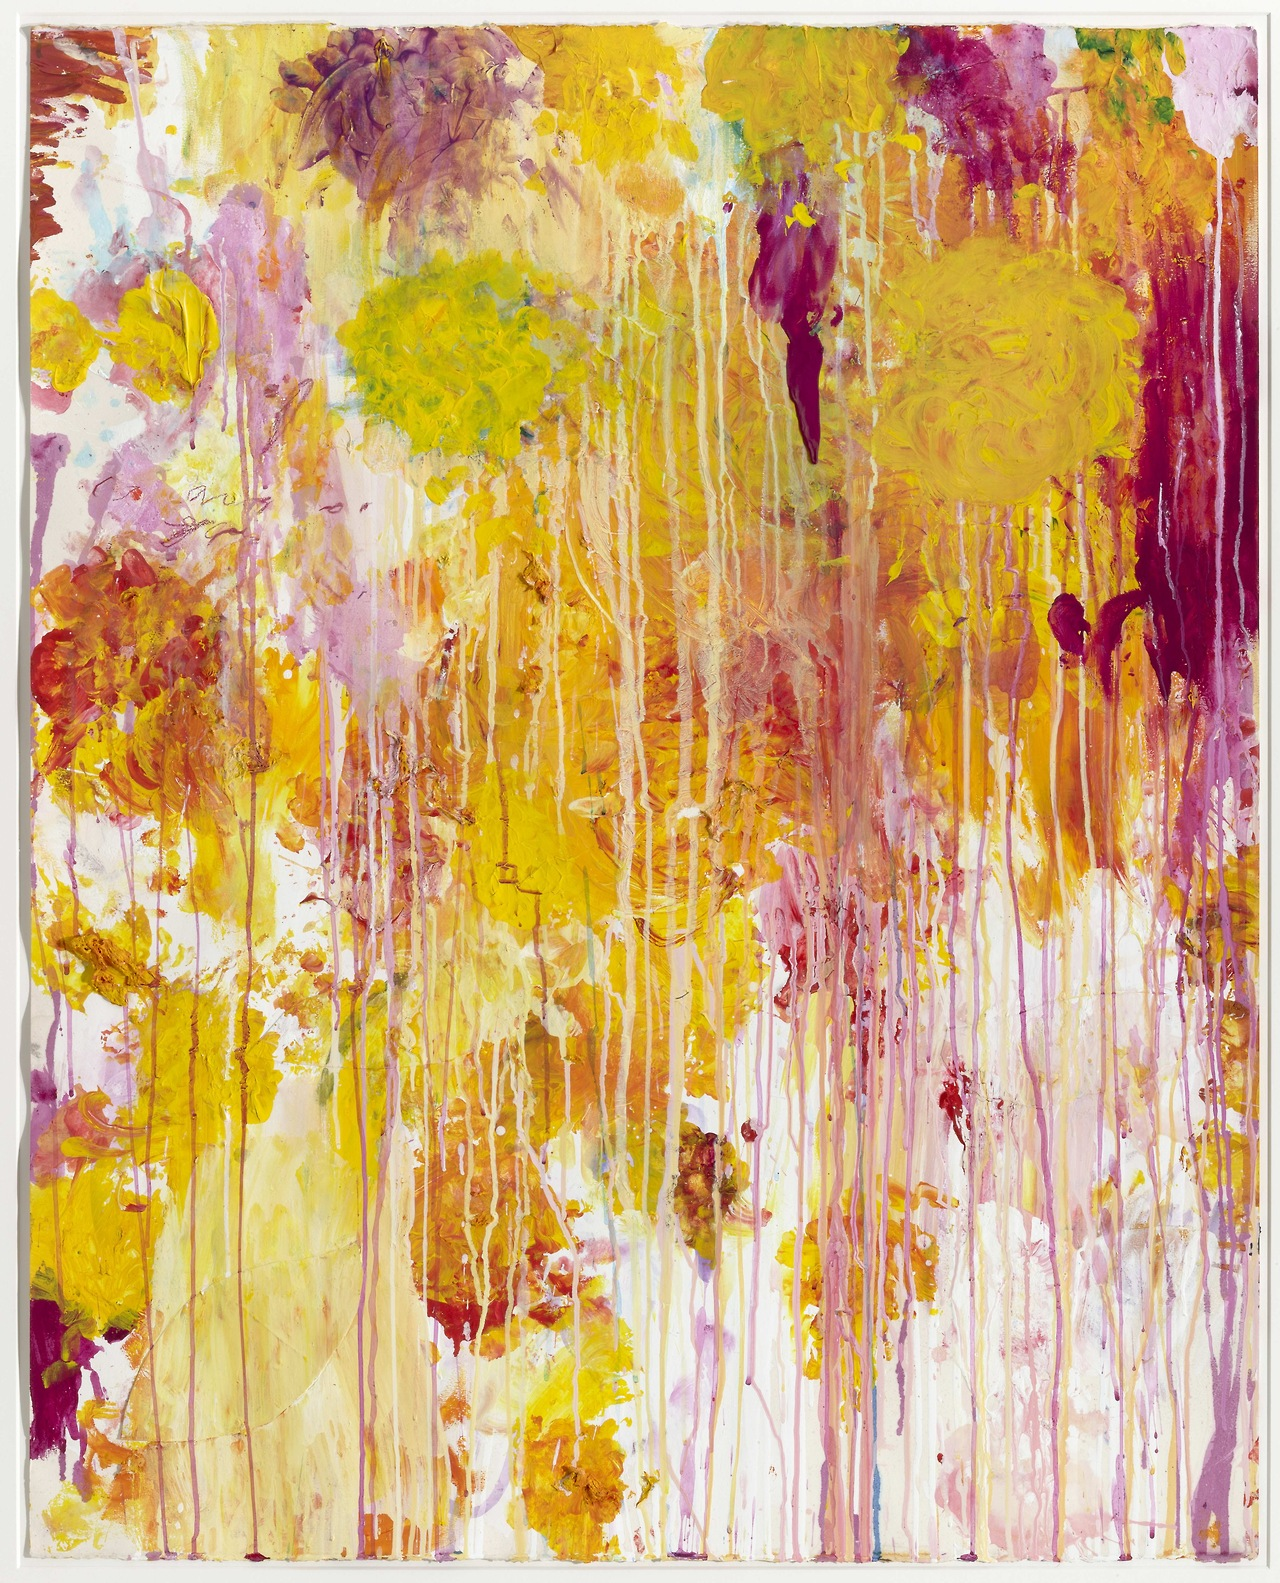 Cy Twombly, American, born 1928, Untitled, 2001